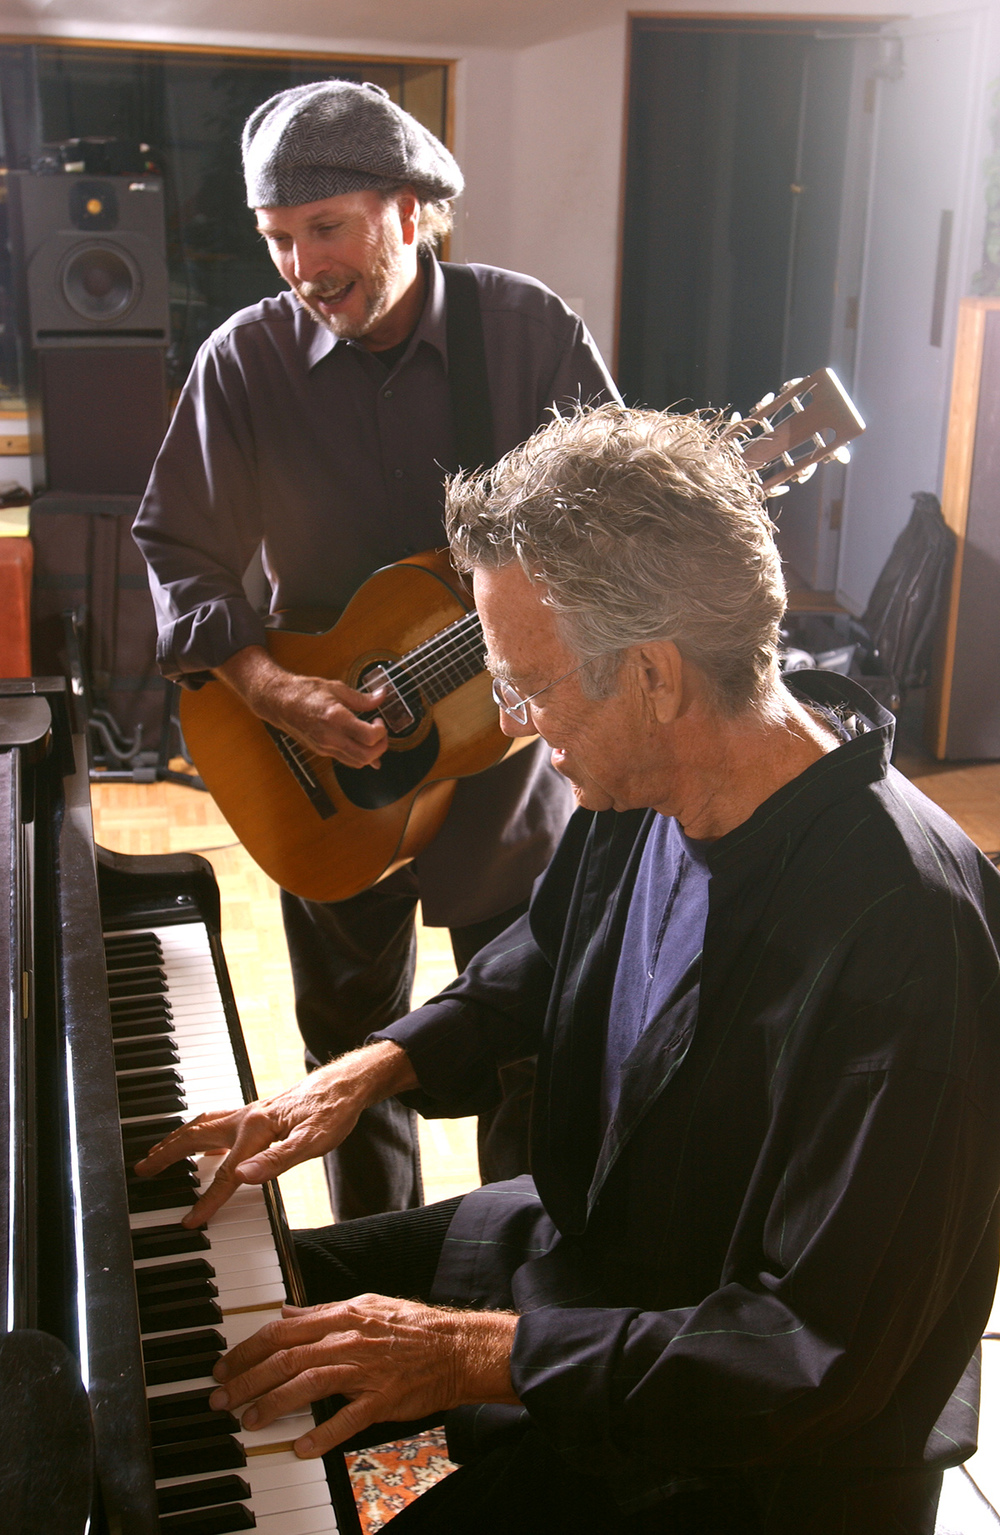 Ray & Roy at Piano.jpg